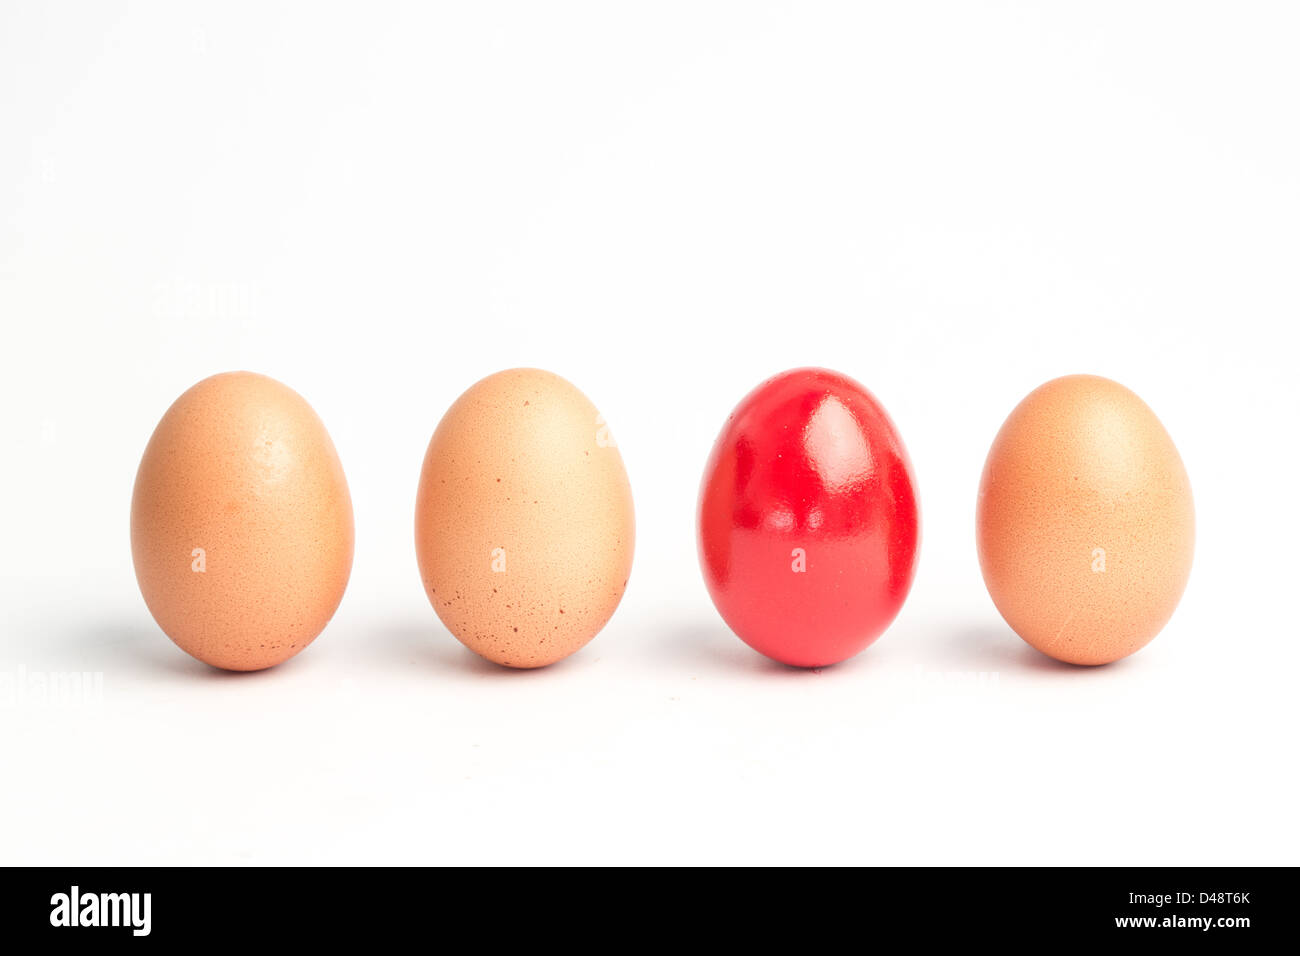 Four eggs in a row with one red one - Stock Image